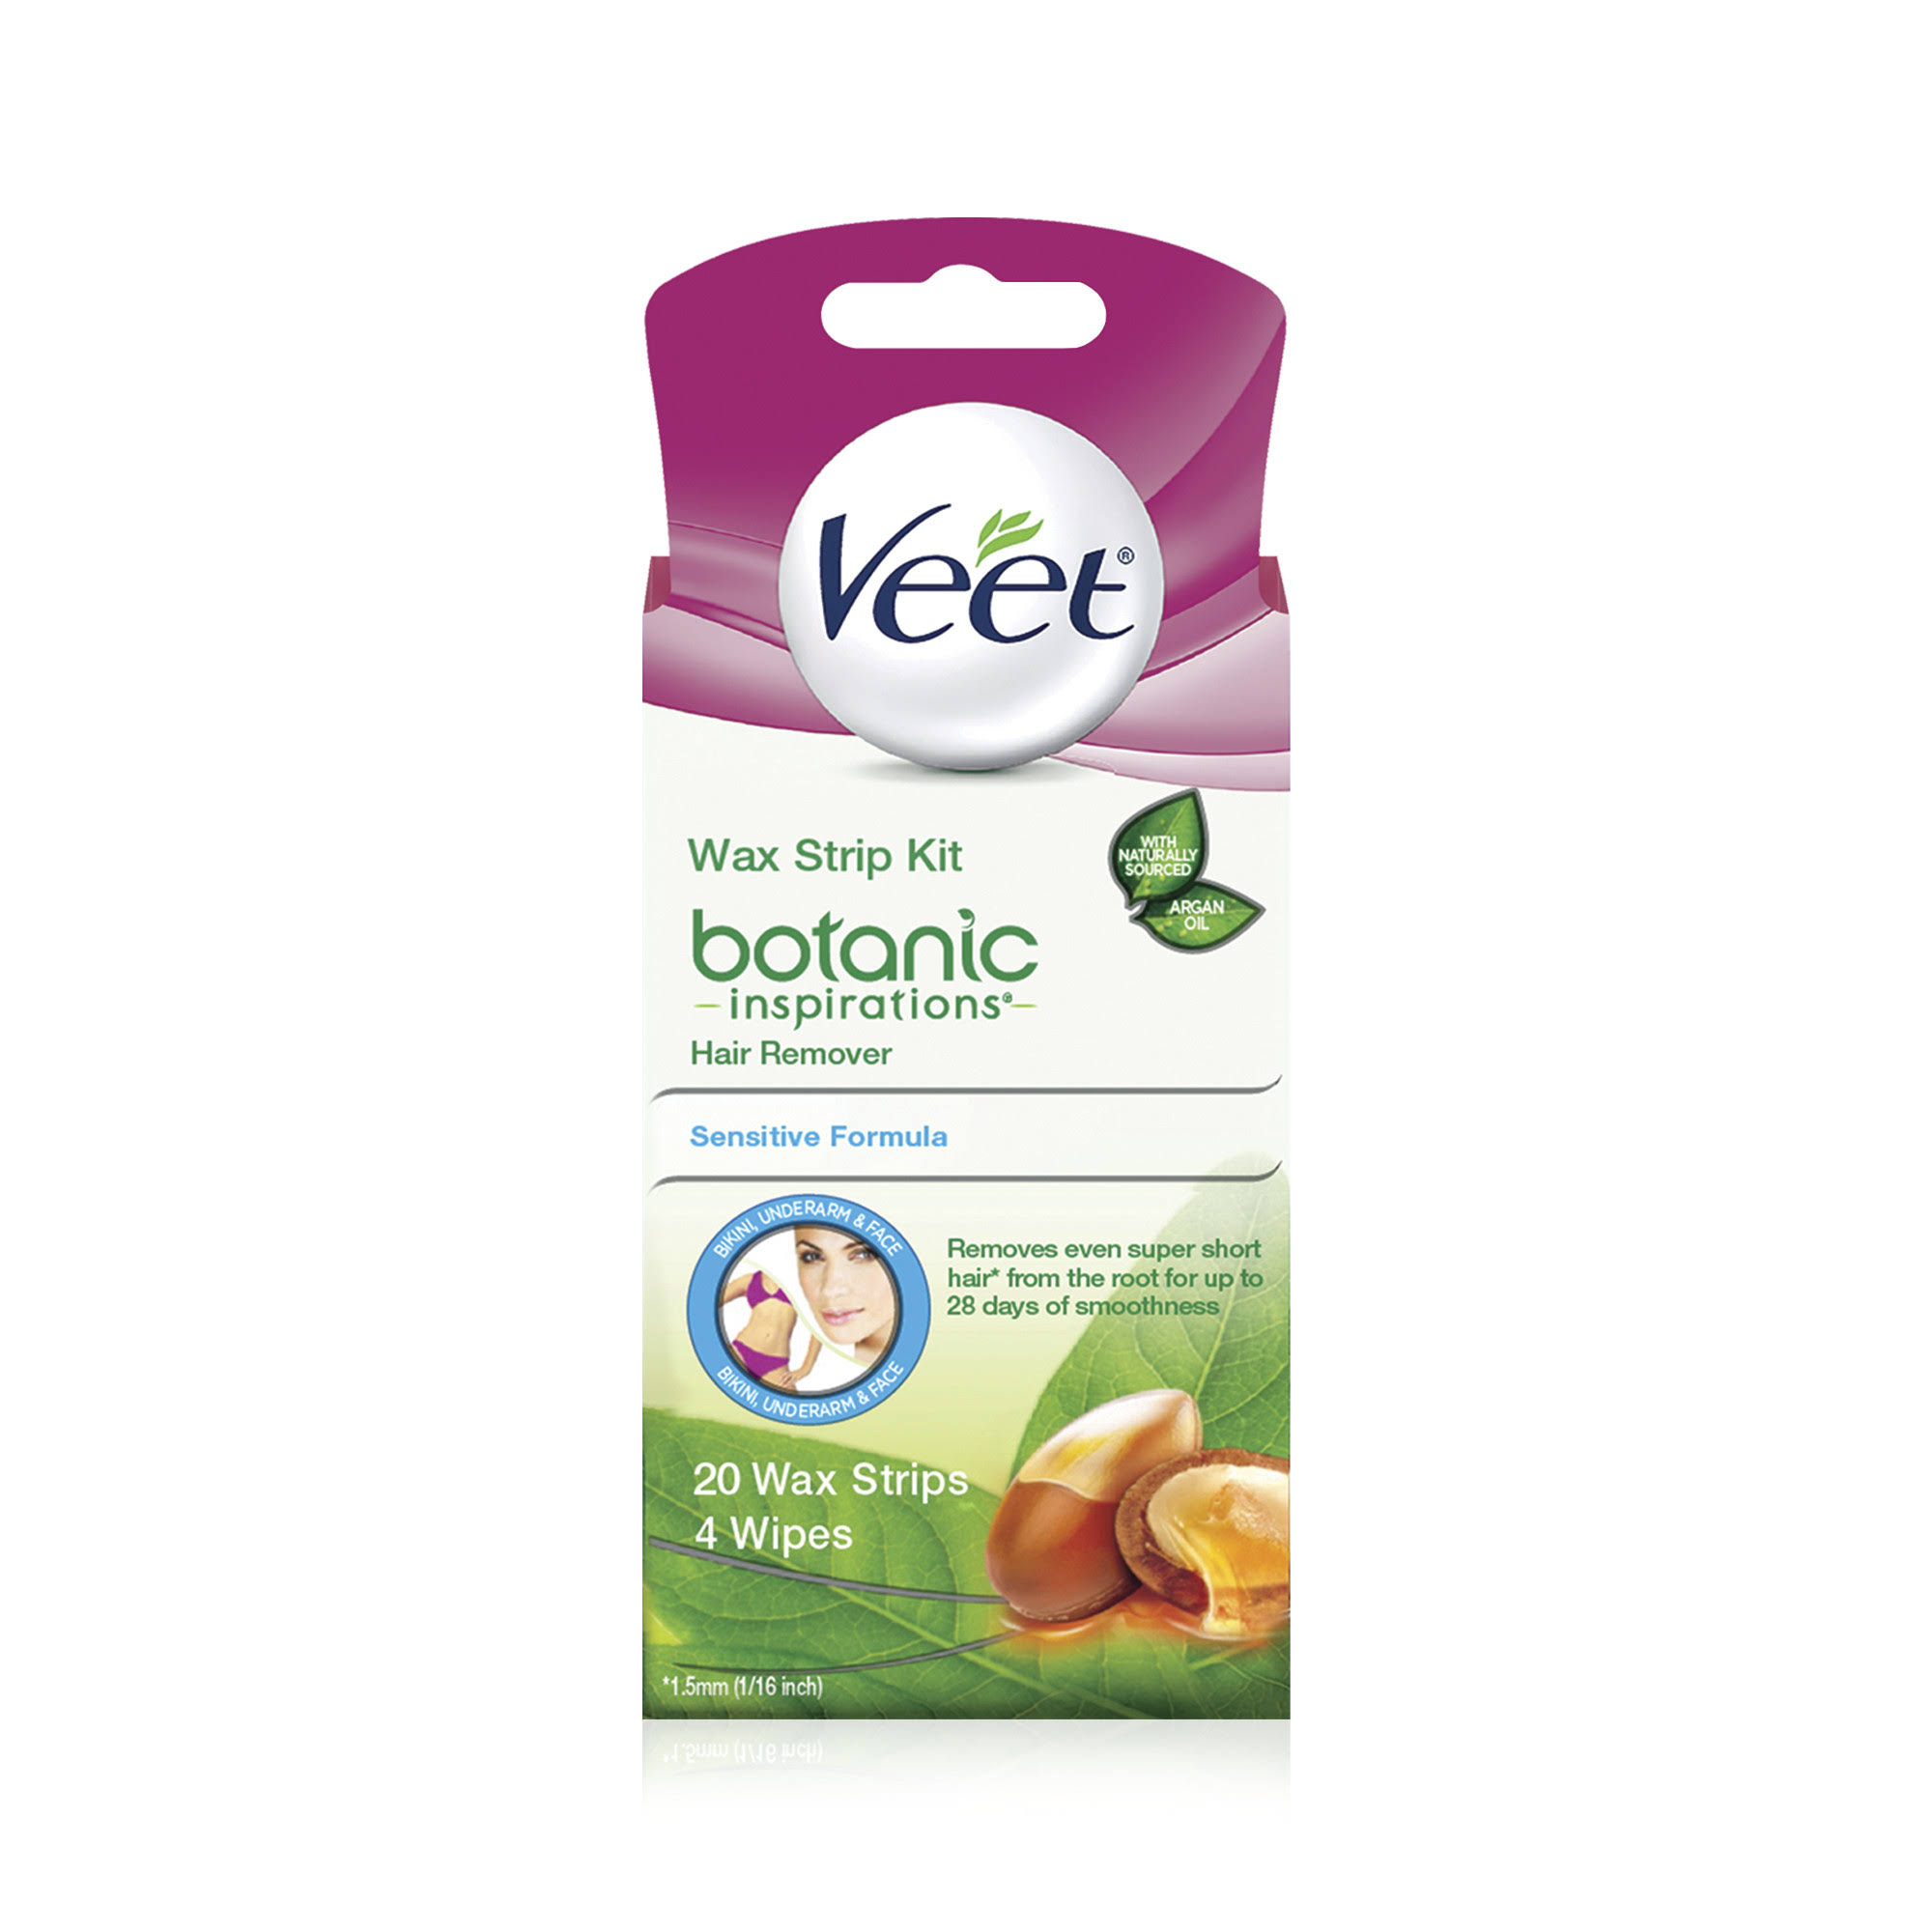 Veet Botanic Inspirations Wax Strip Kit Hair Remover - 20ct